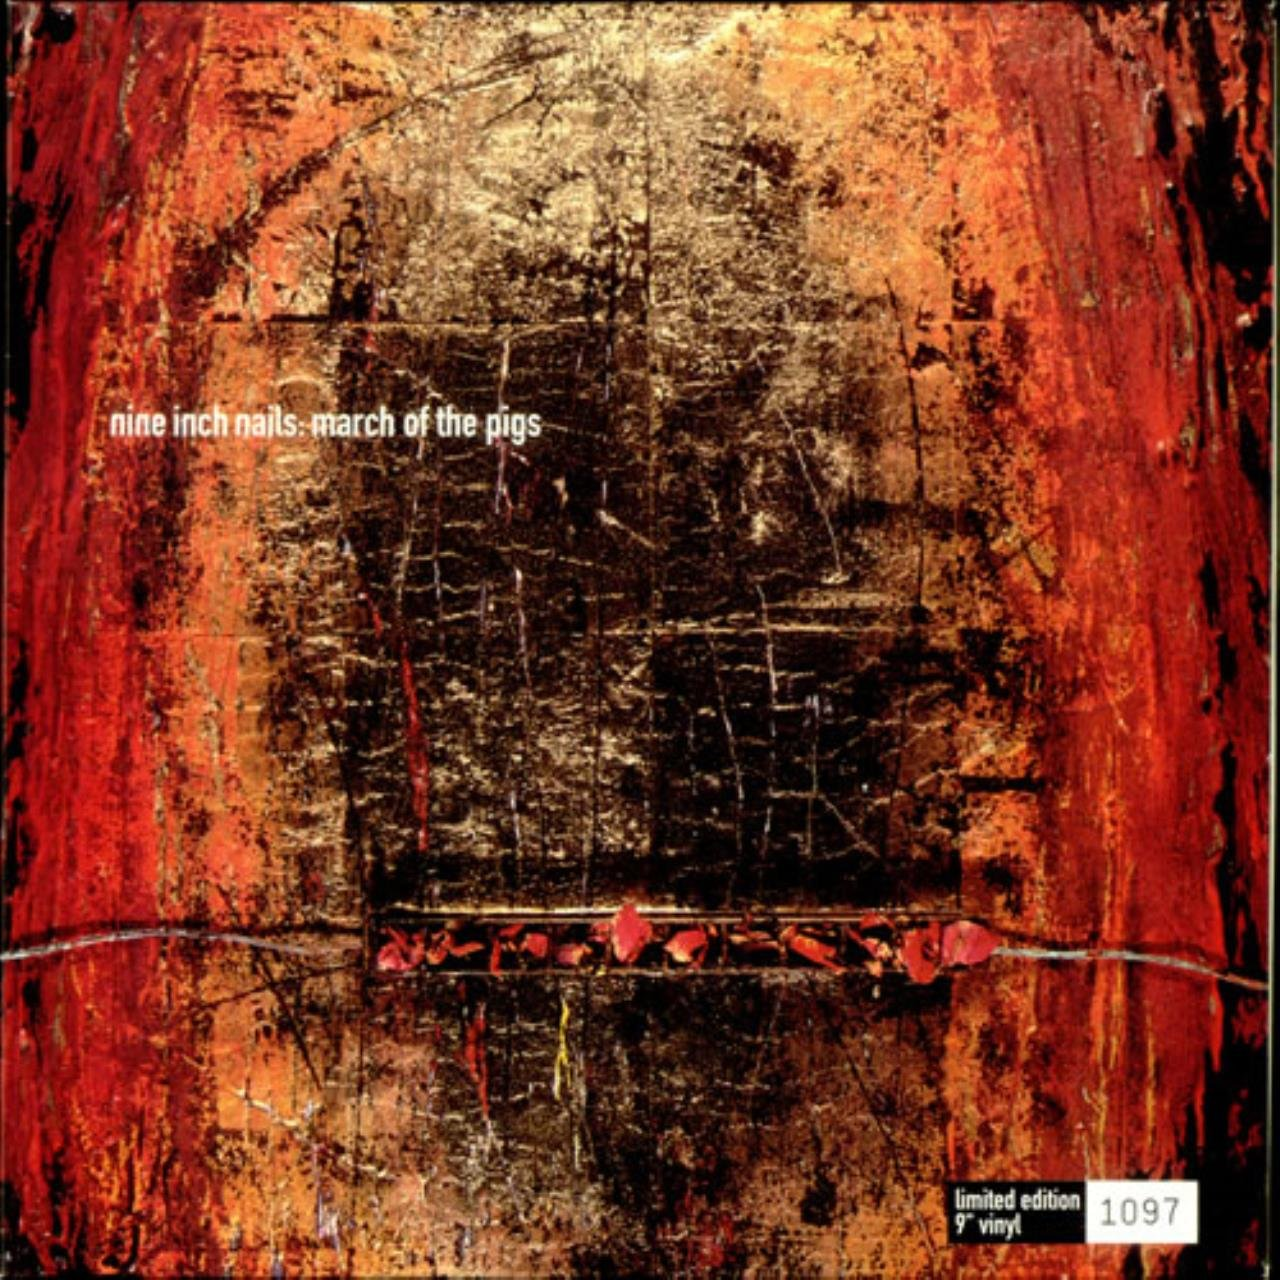 Nine Inch Nails - Nine Inch Nails / March Of The Pigs - Amazon.com Music